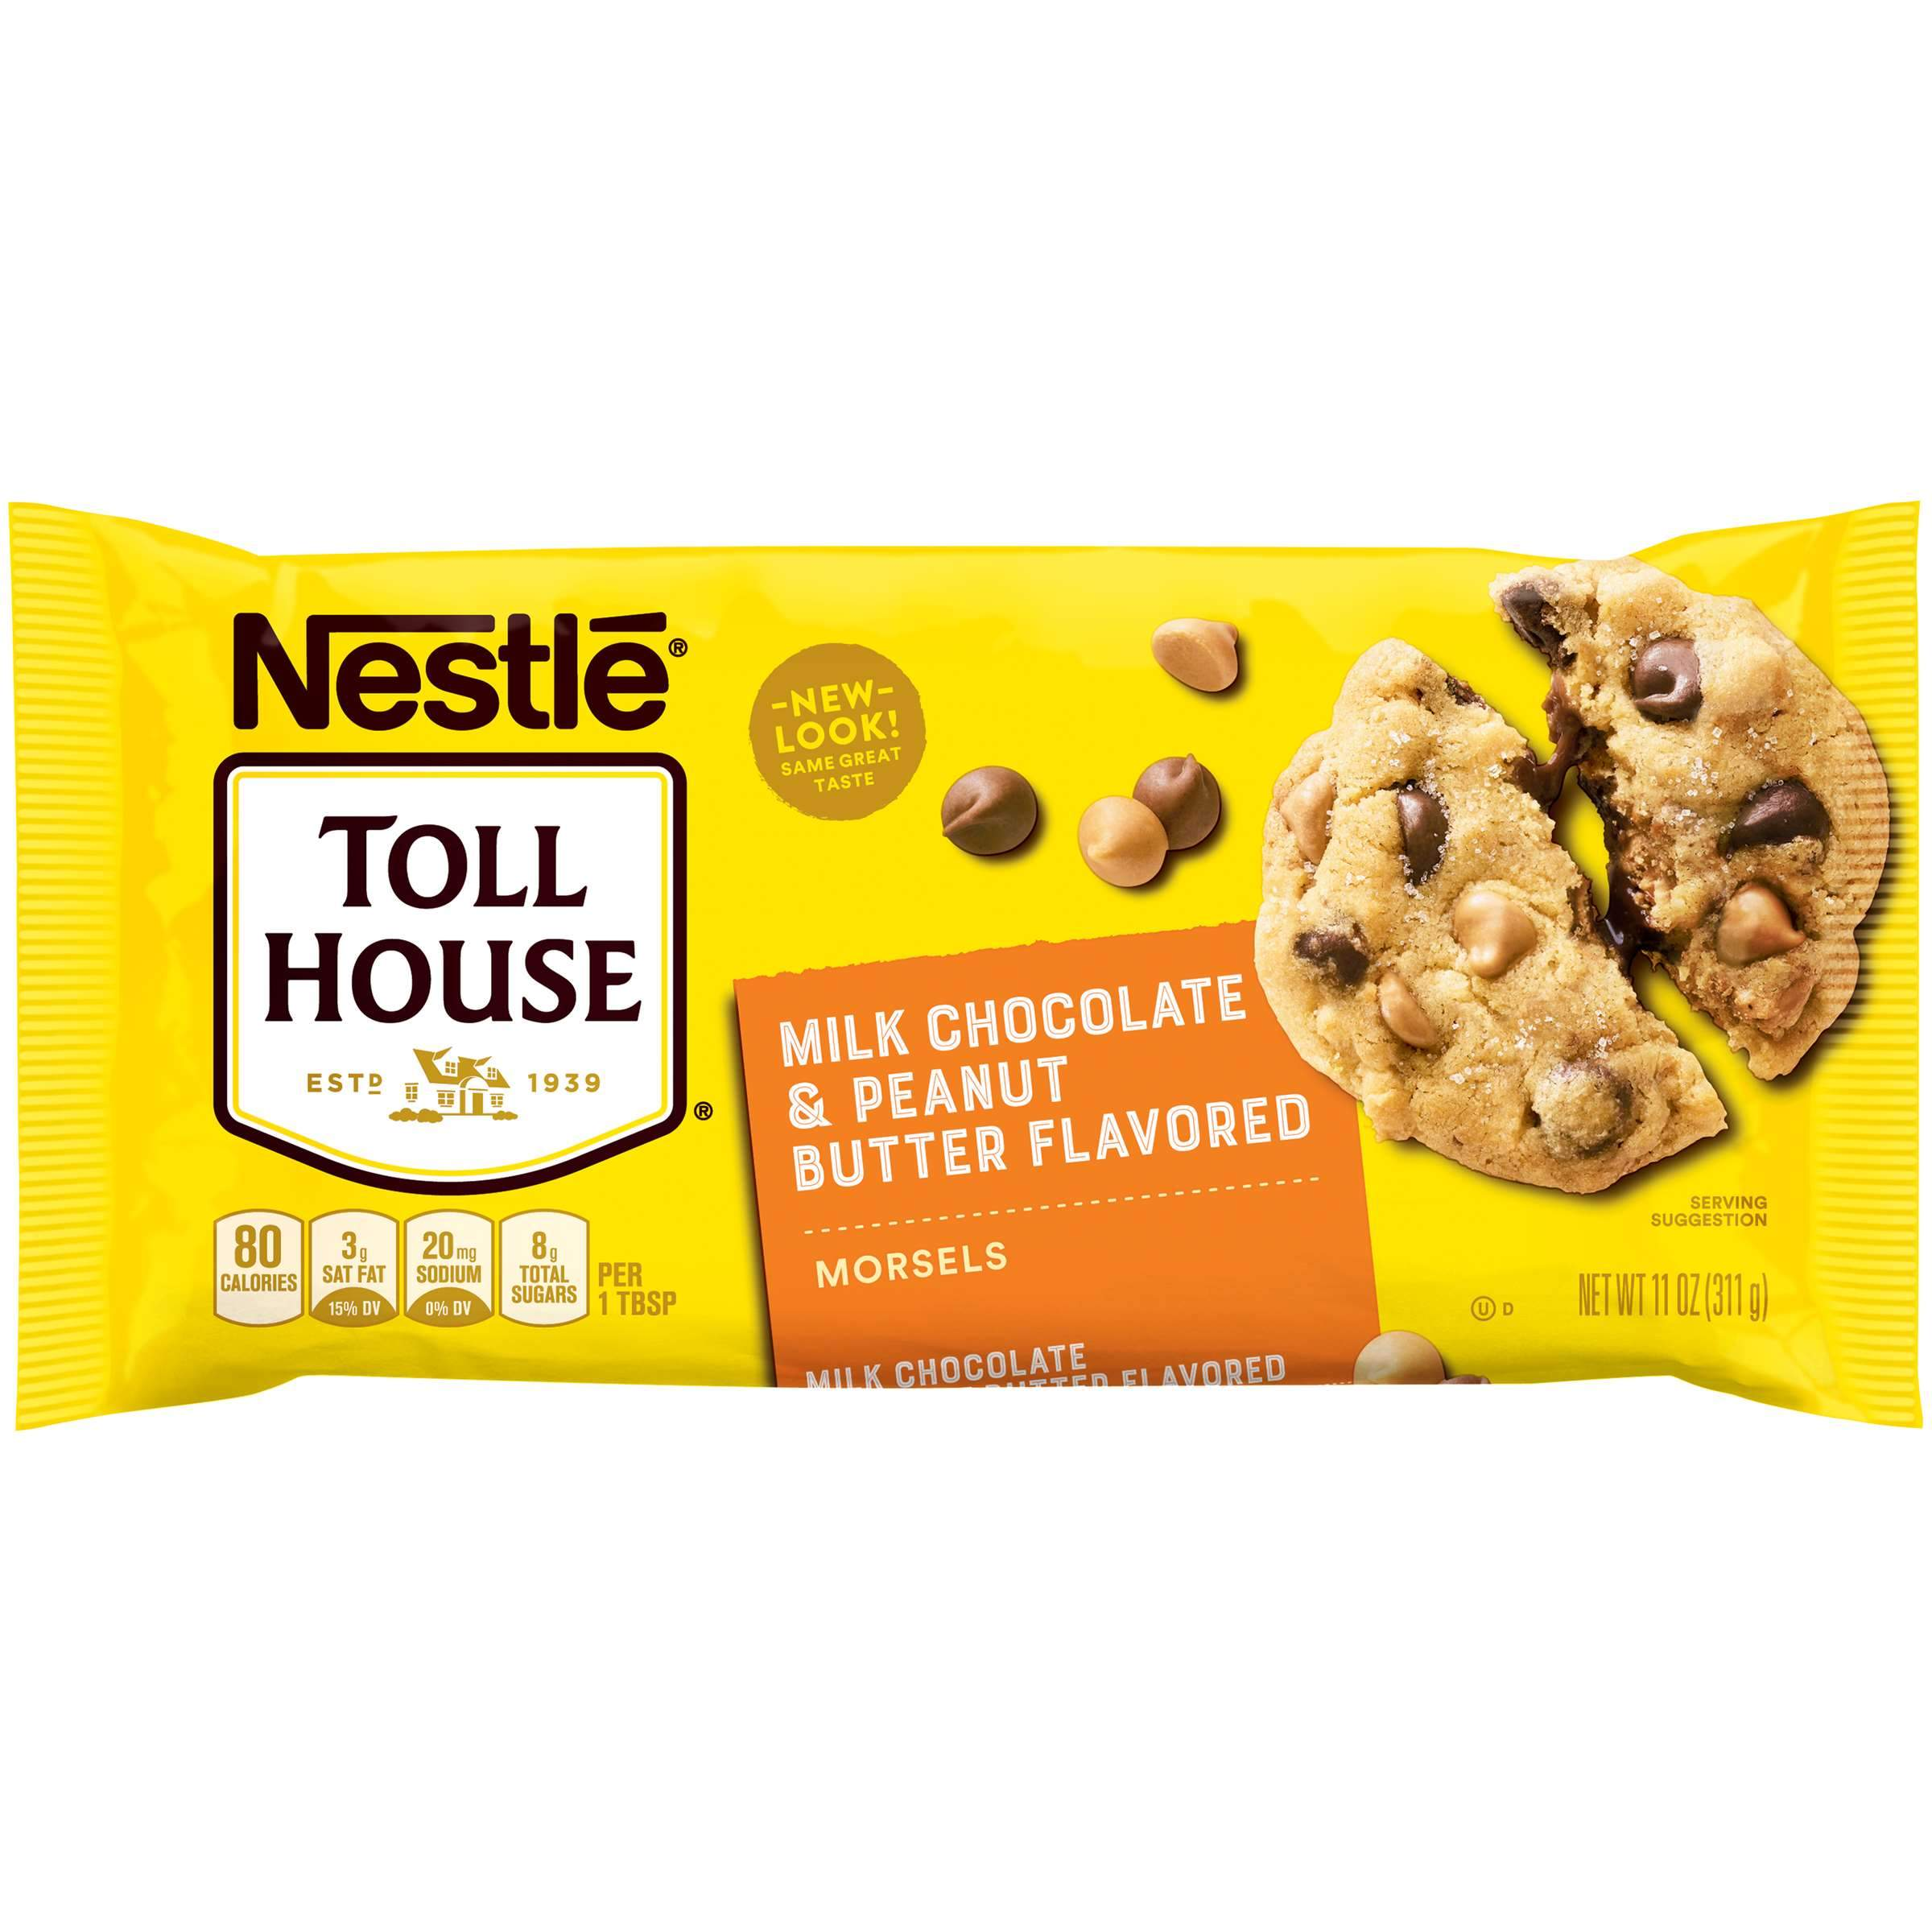 Nestlé Toll House Baking Morsels Toll House Peanut Butter & Milk Chocolate 11 Ounce